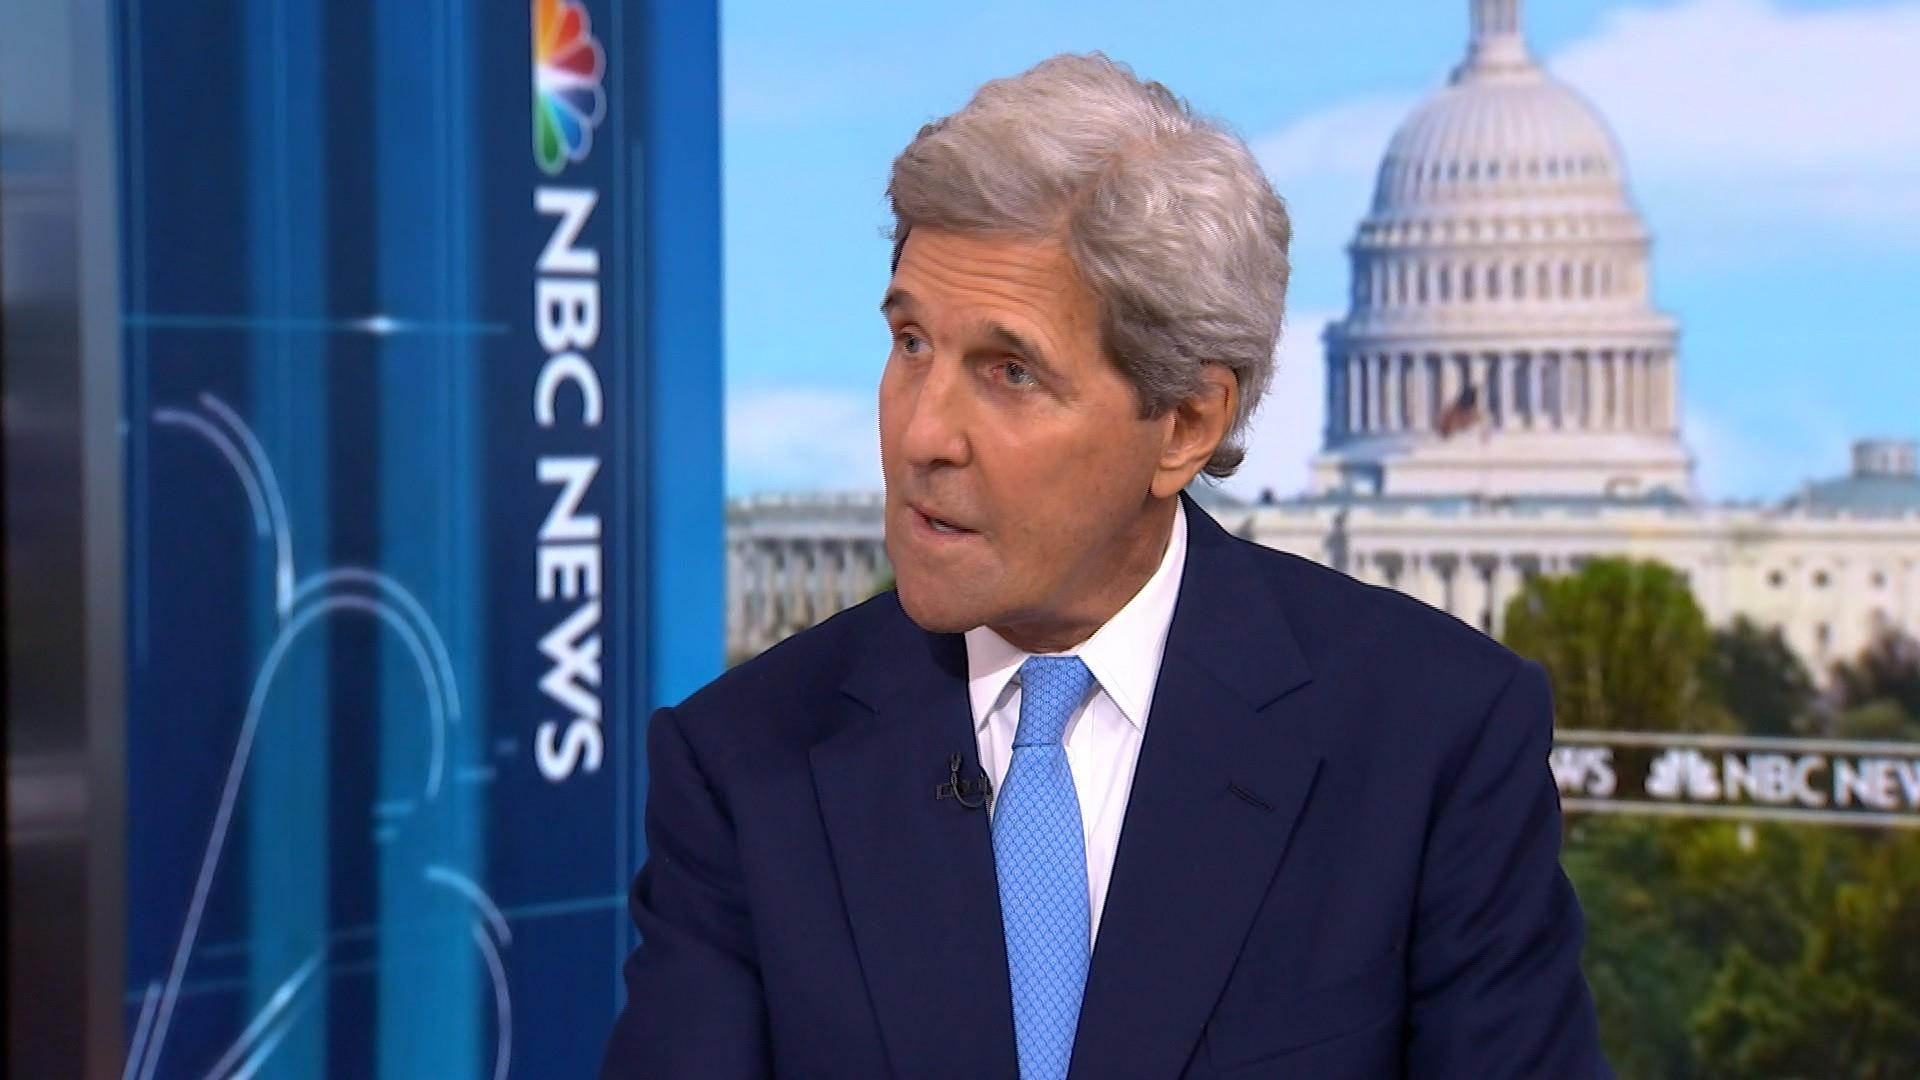 Kerry: Trump 'didn't defend the United States' in Helsinki